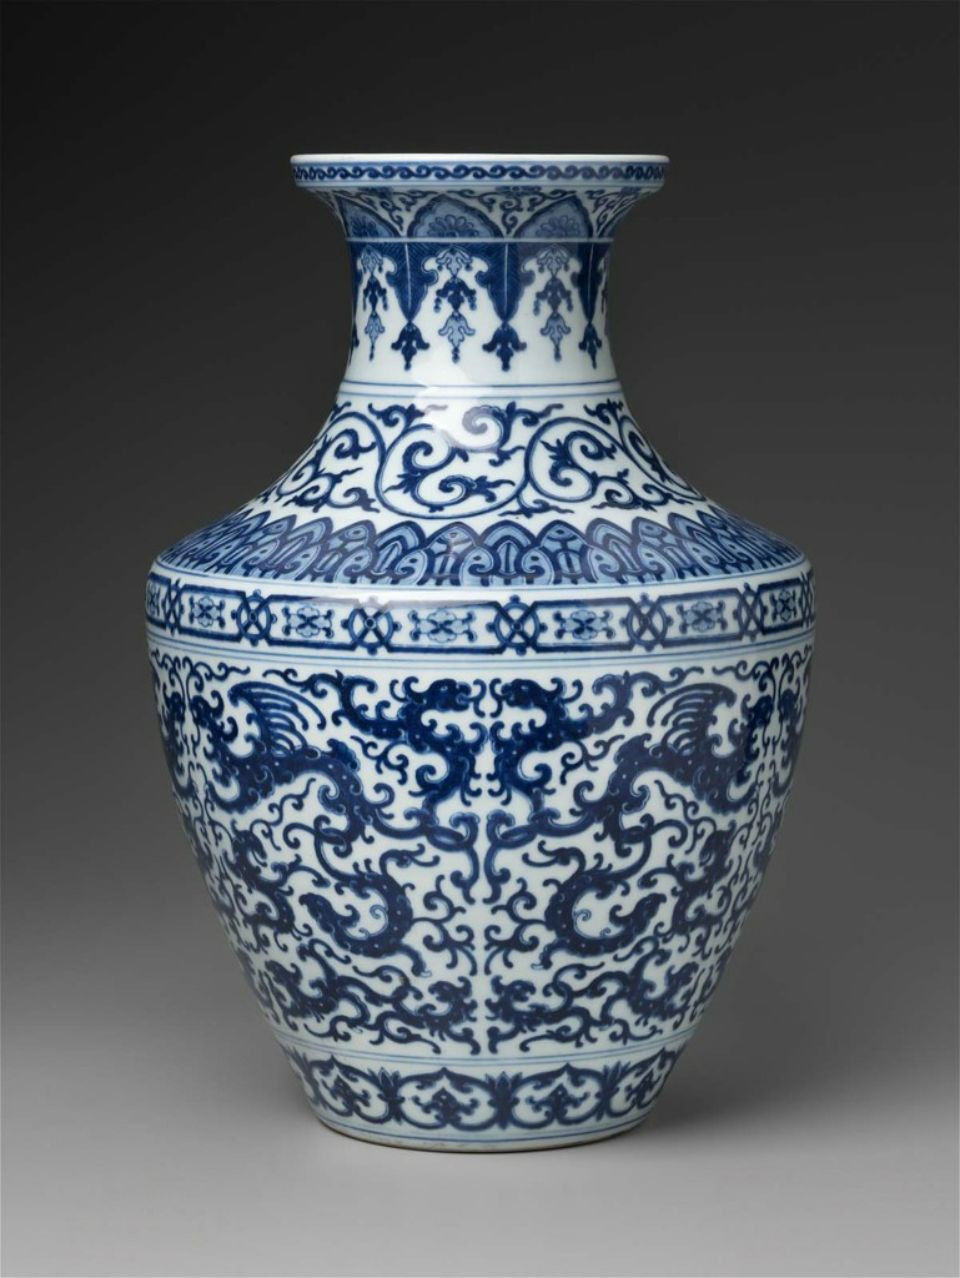 tall blue white vase of vase with blue white phoenix winged dragons chinese qing intended for vase with blue white phoenix winged dragons chinese qing dynasty qianlong period 1736 95 porcelain